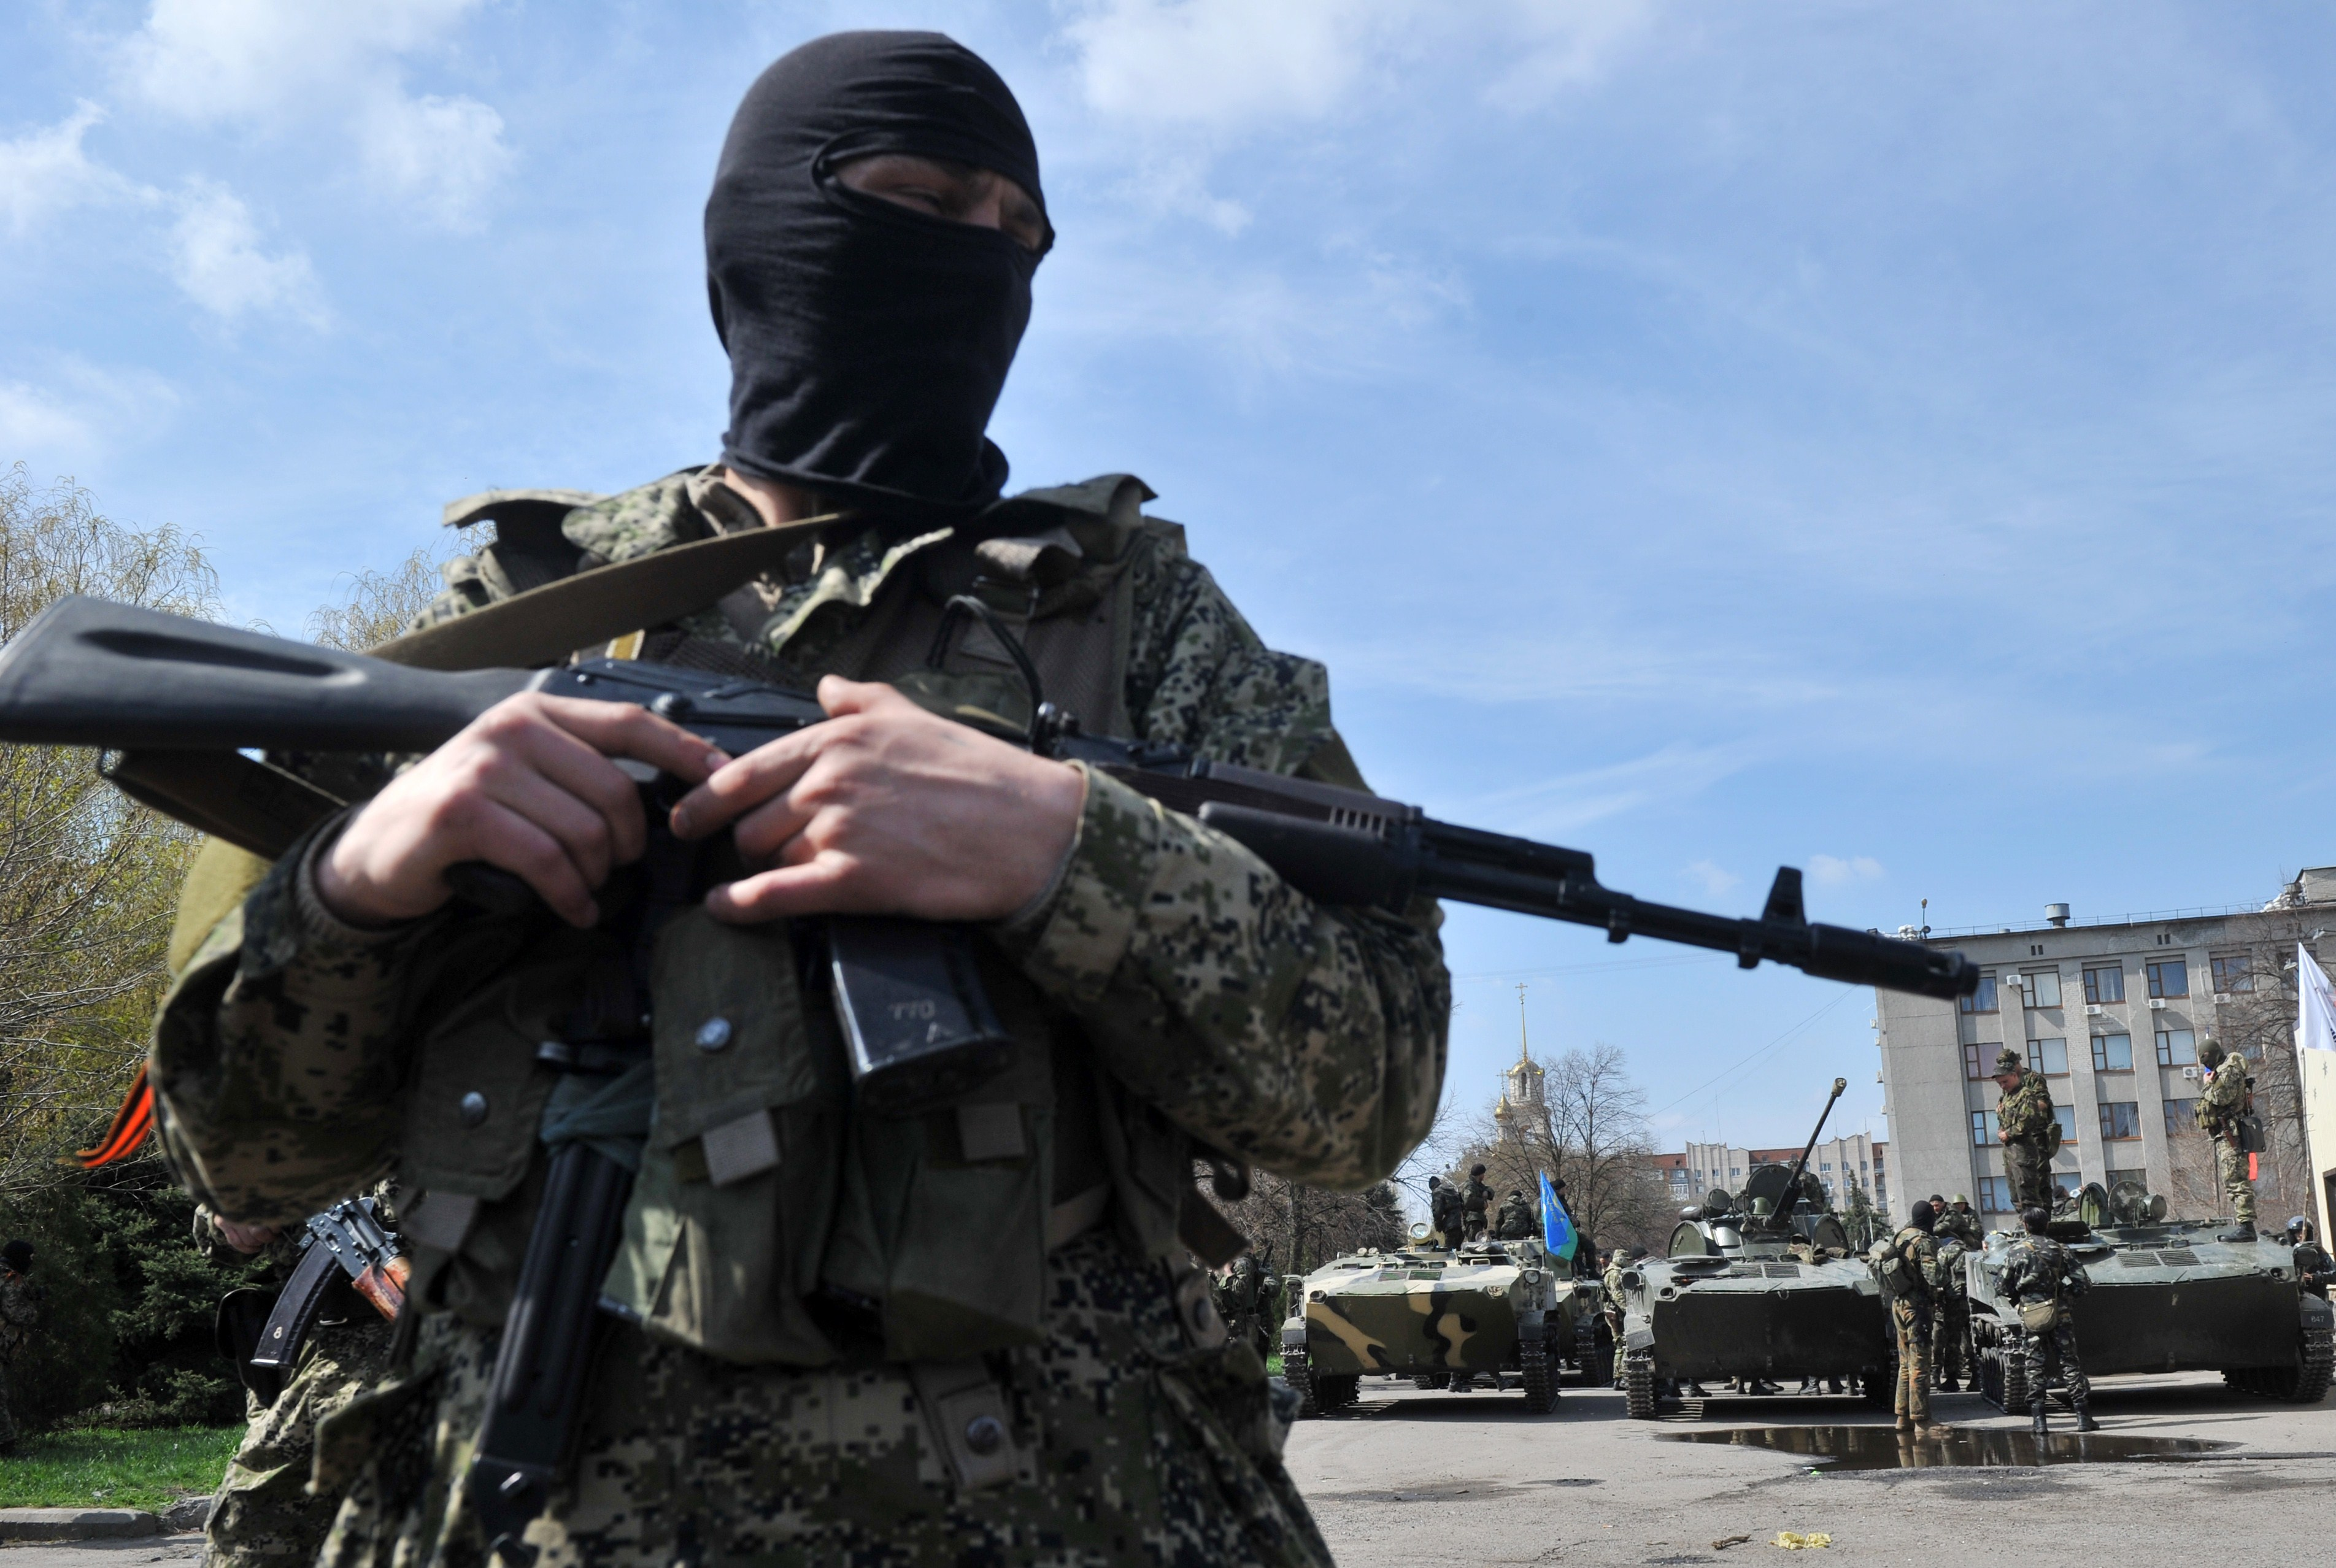 Armed militants outside the regional state building seized by pro-Russian separatists in the eastern Ukrainian city of Slavyansk on Wednesday.